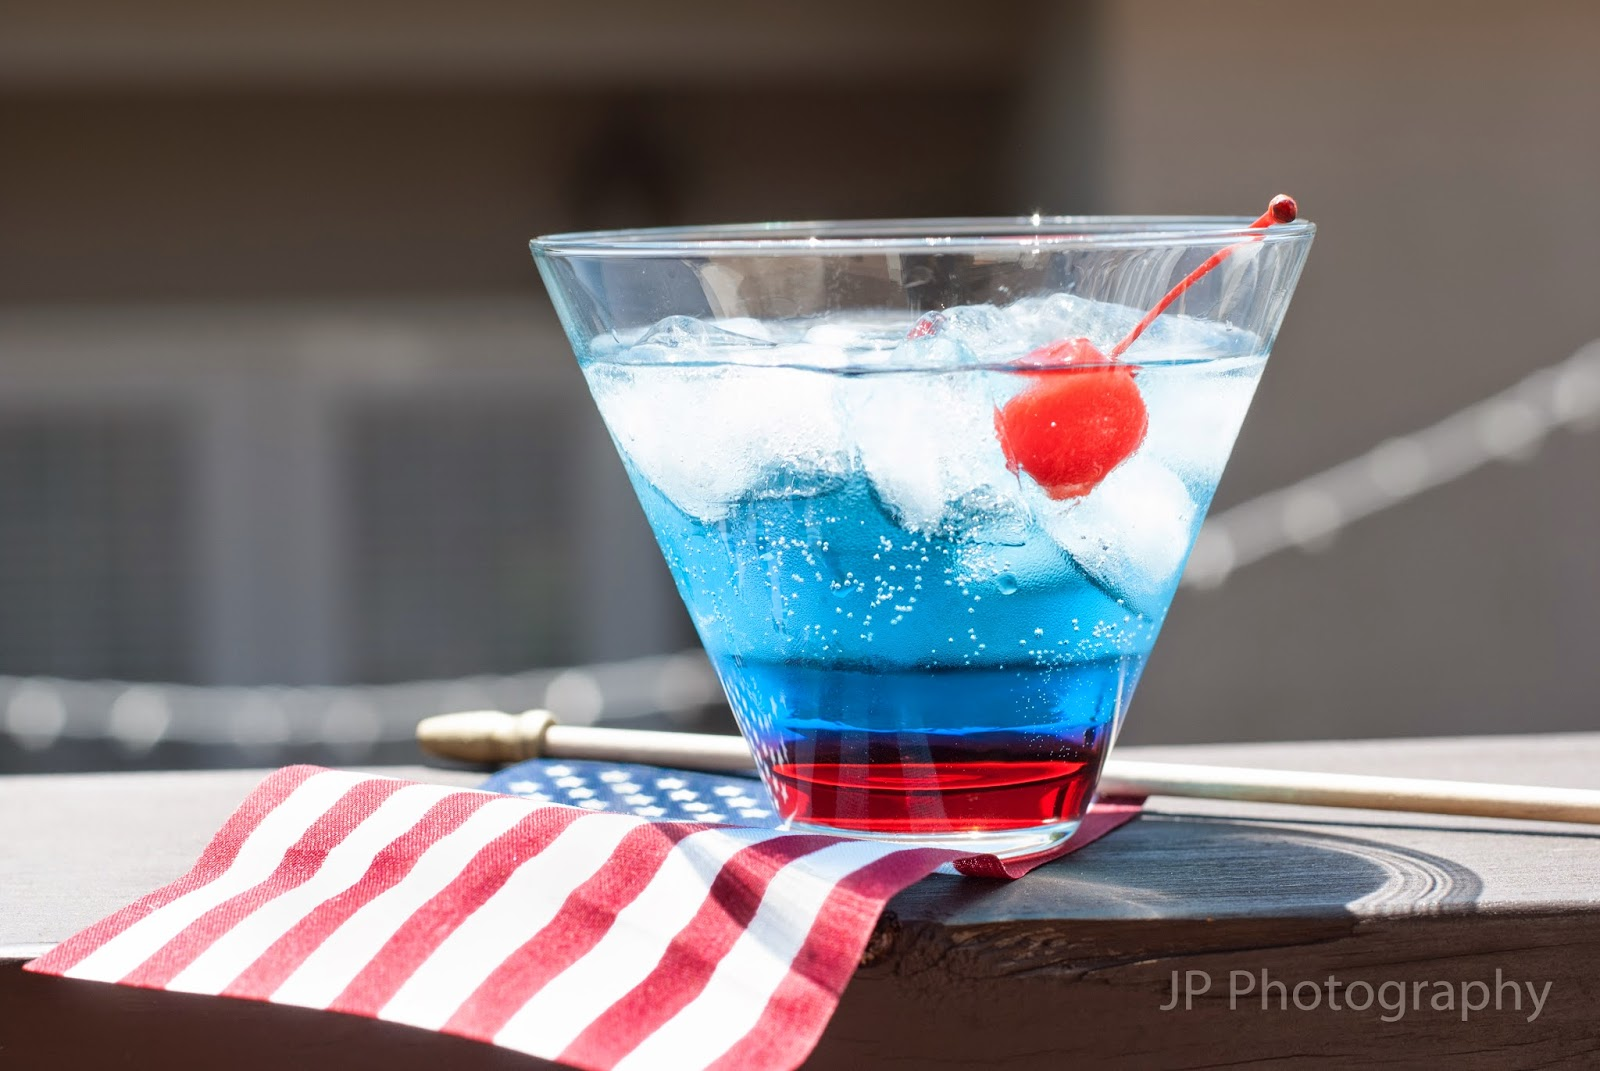 The Patriotic Celebration is a great cocktail for The 4th Of July.